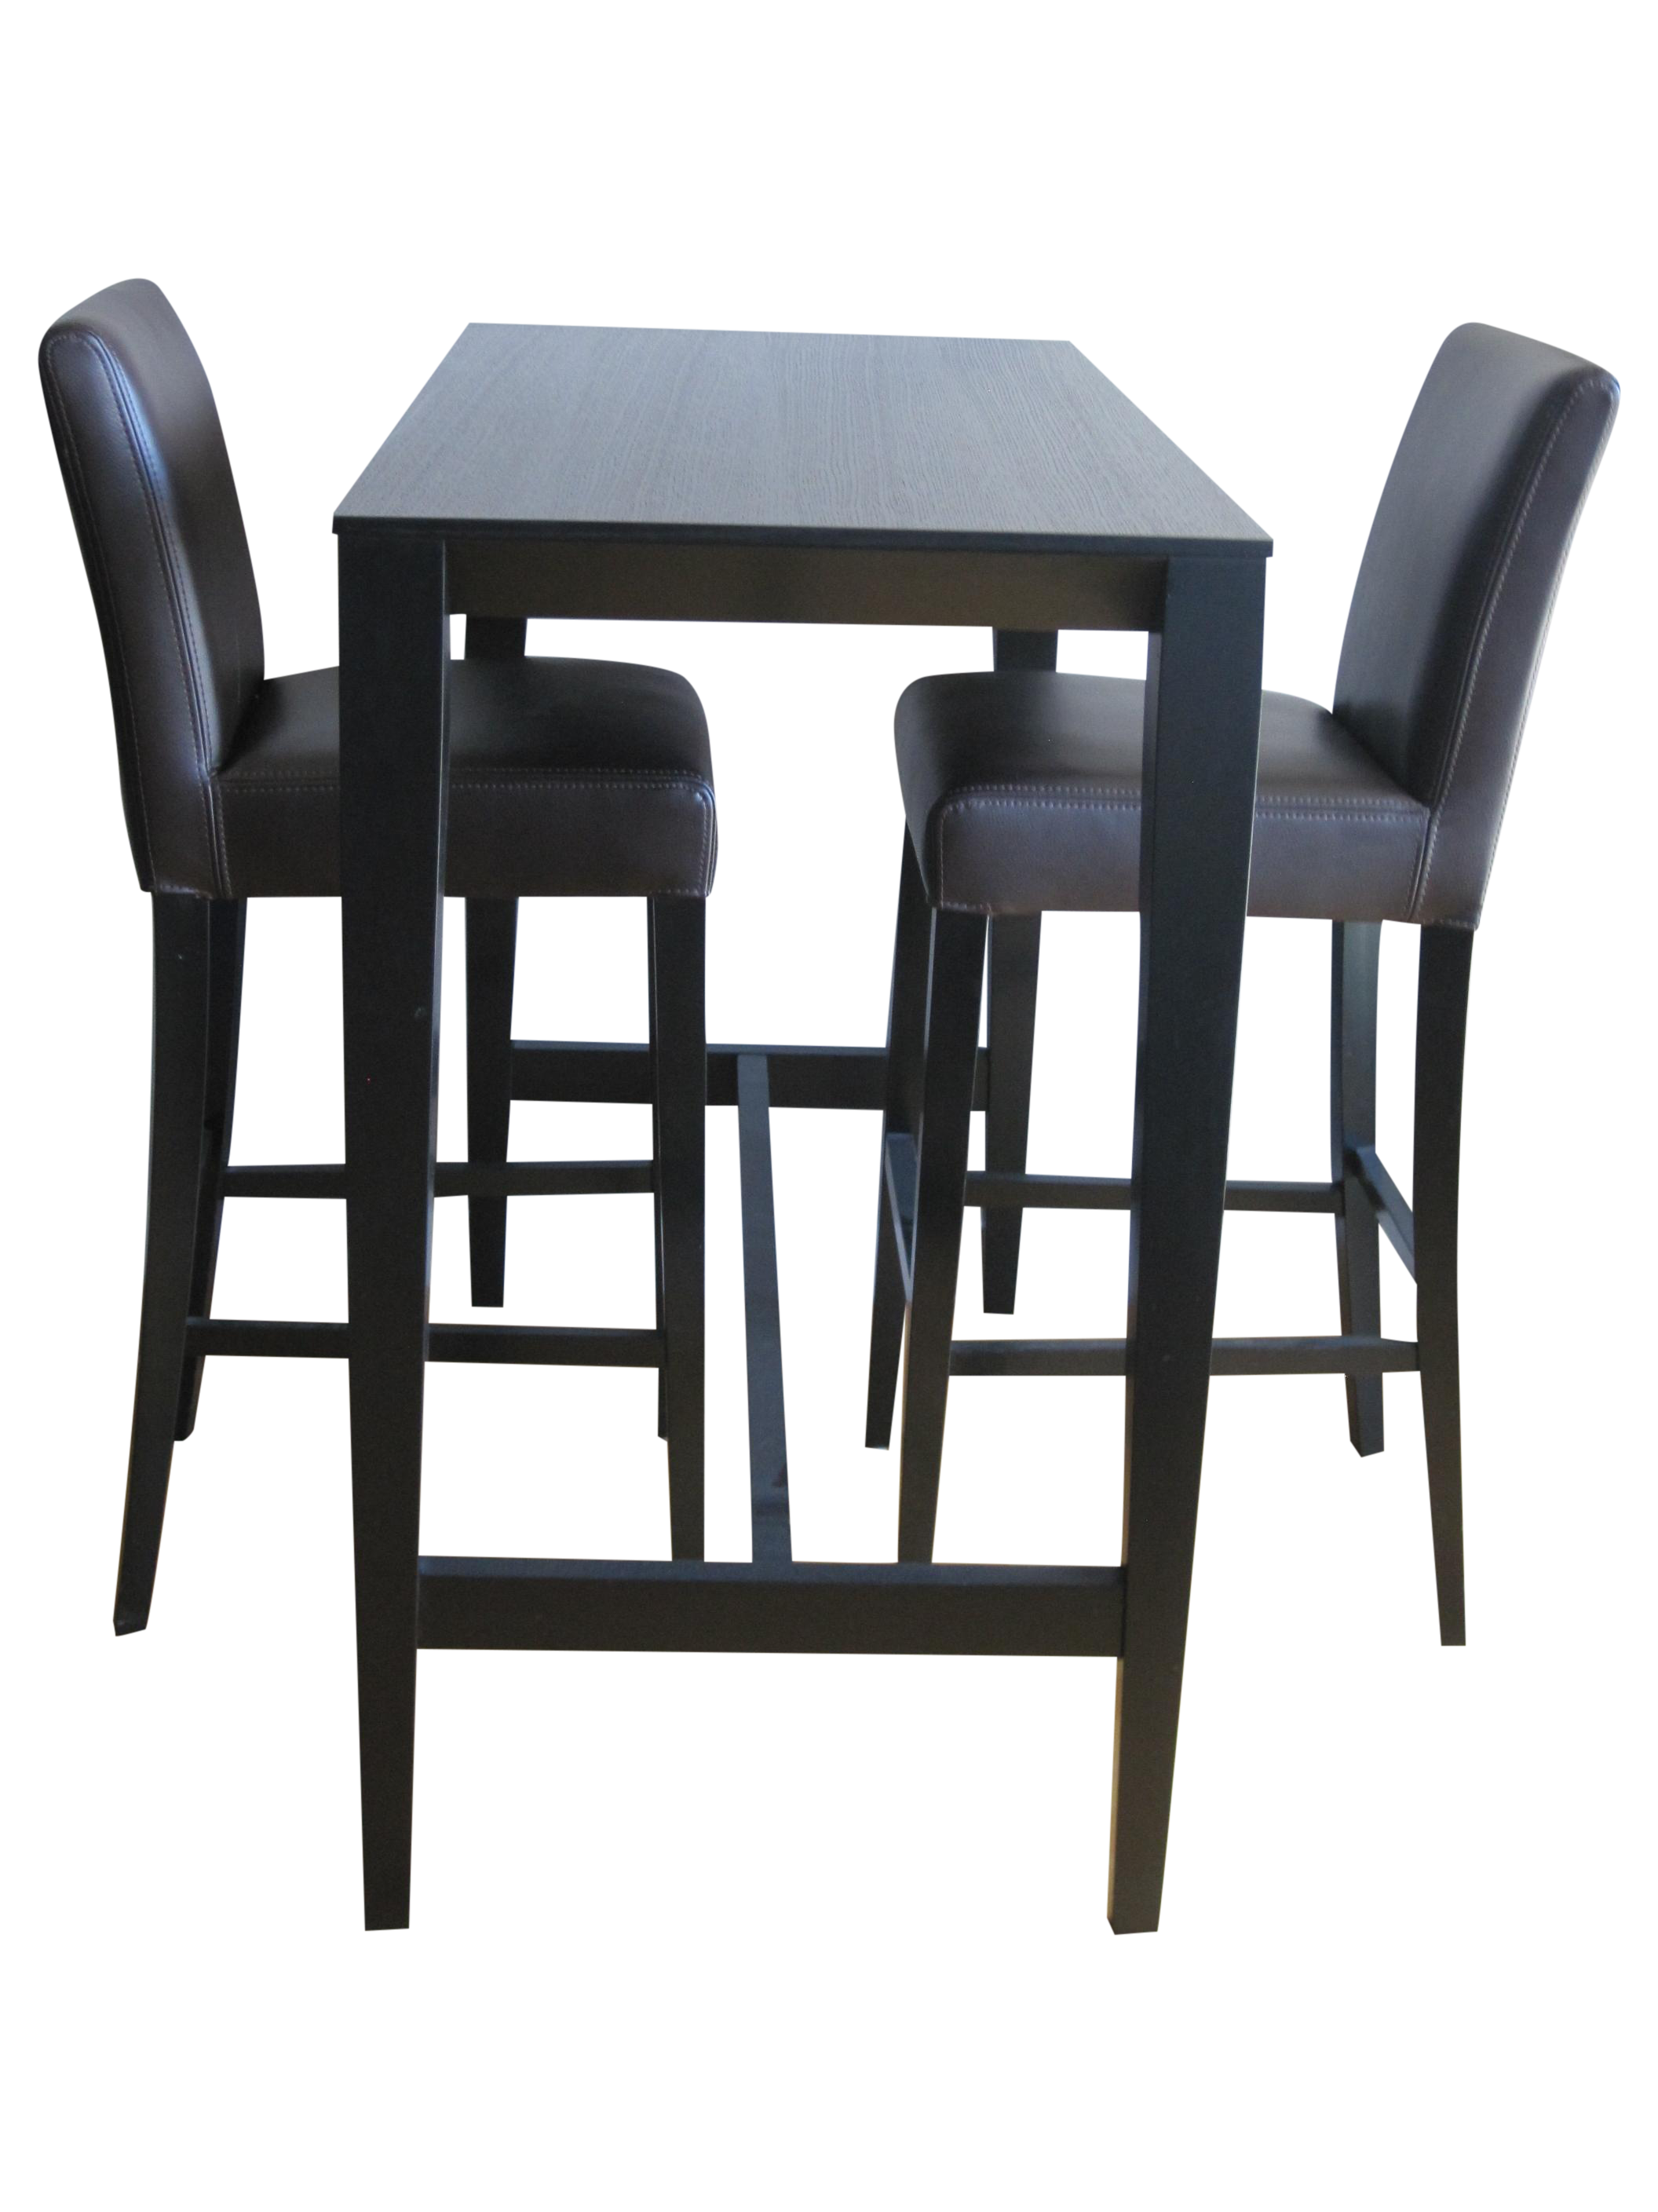 Is crate and barrel furniture good quality - Crate Barrel Triad High Bar Table 2 Stools Black Retails For Over 800 For The Set Selling For 600 Obo Check Out Myyardsaleonline Com For